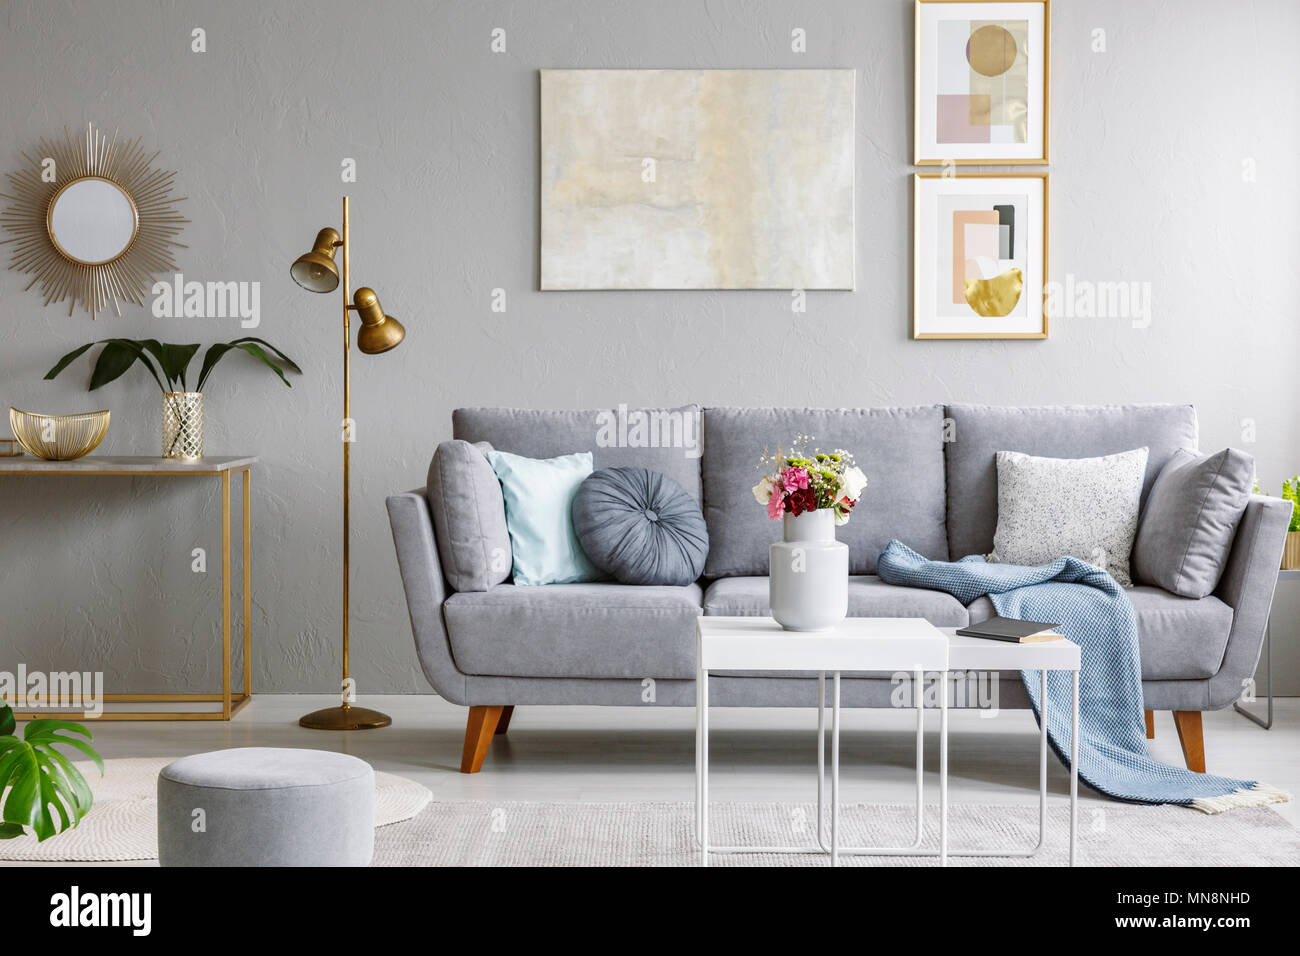 Gold Mirror Above Shelf With Plant In Grey Living Room Interior Sofa And Flowers On Table Real Photo